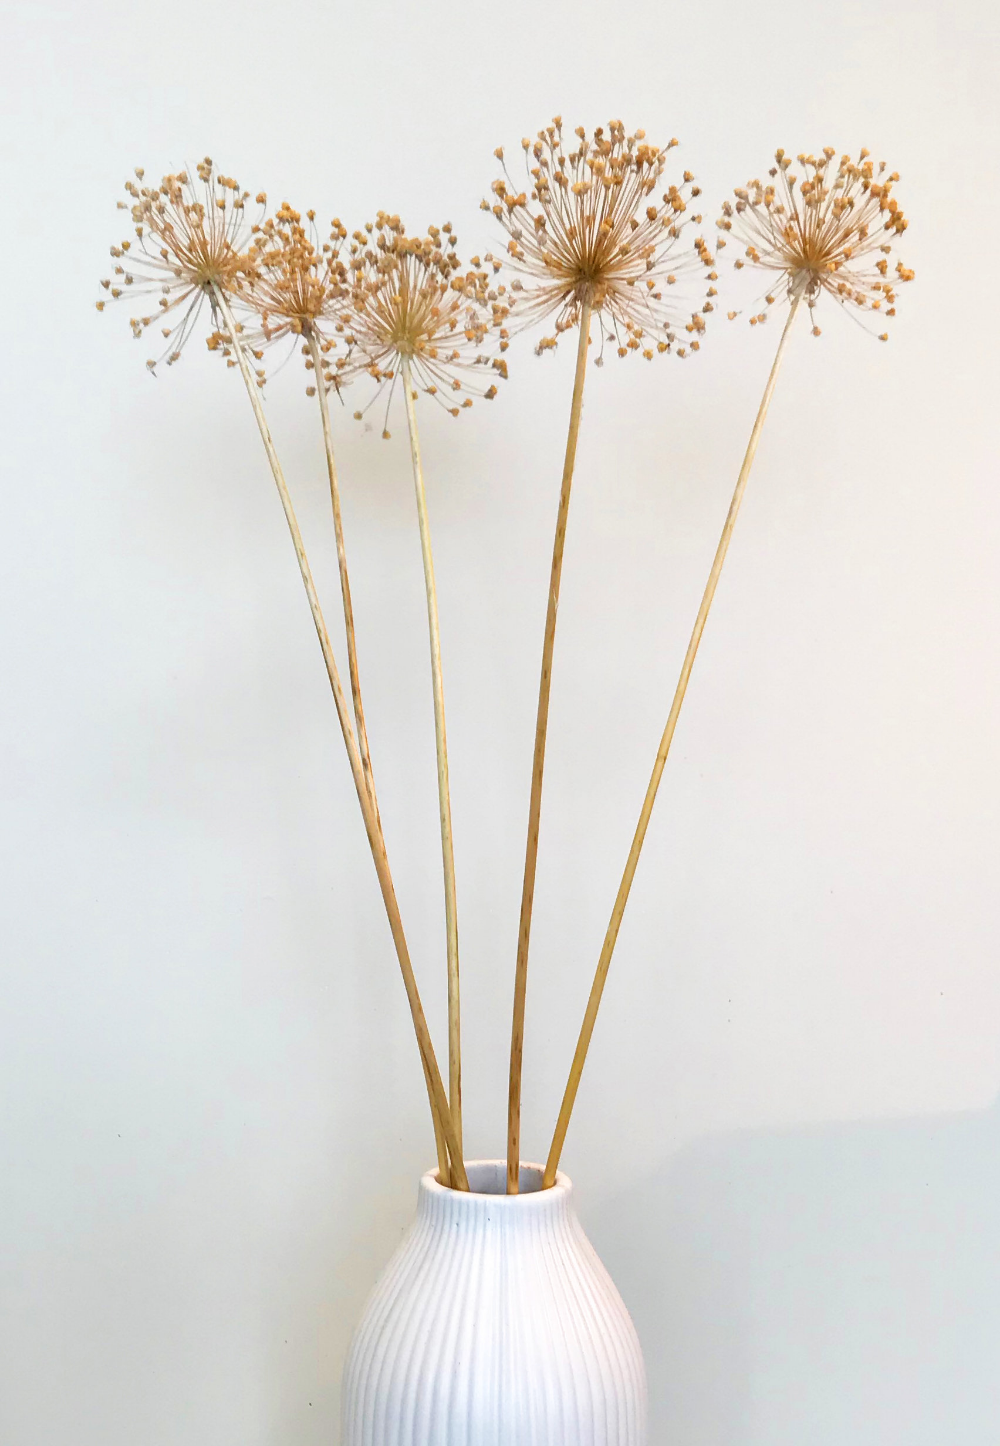 Naturally Dried Giant Allium Flower For Dried Flower Etsy Flower Arrangements Allium Flowers Dried Flower Arrangements